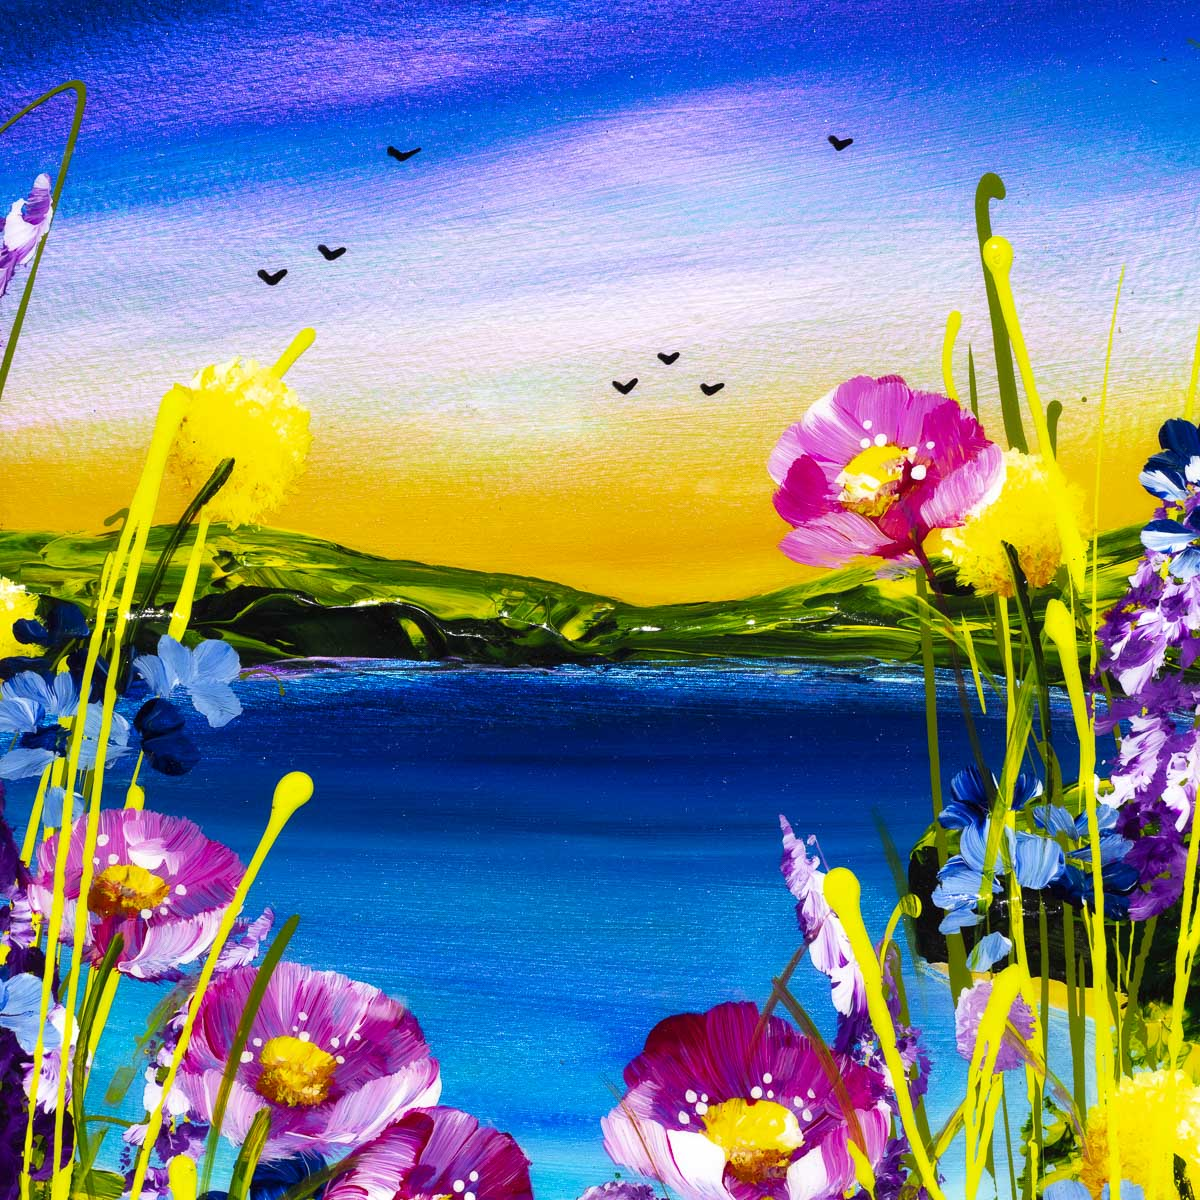 Seaside Blooms III - Original - SOLD